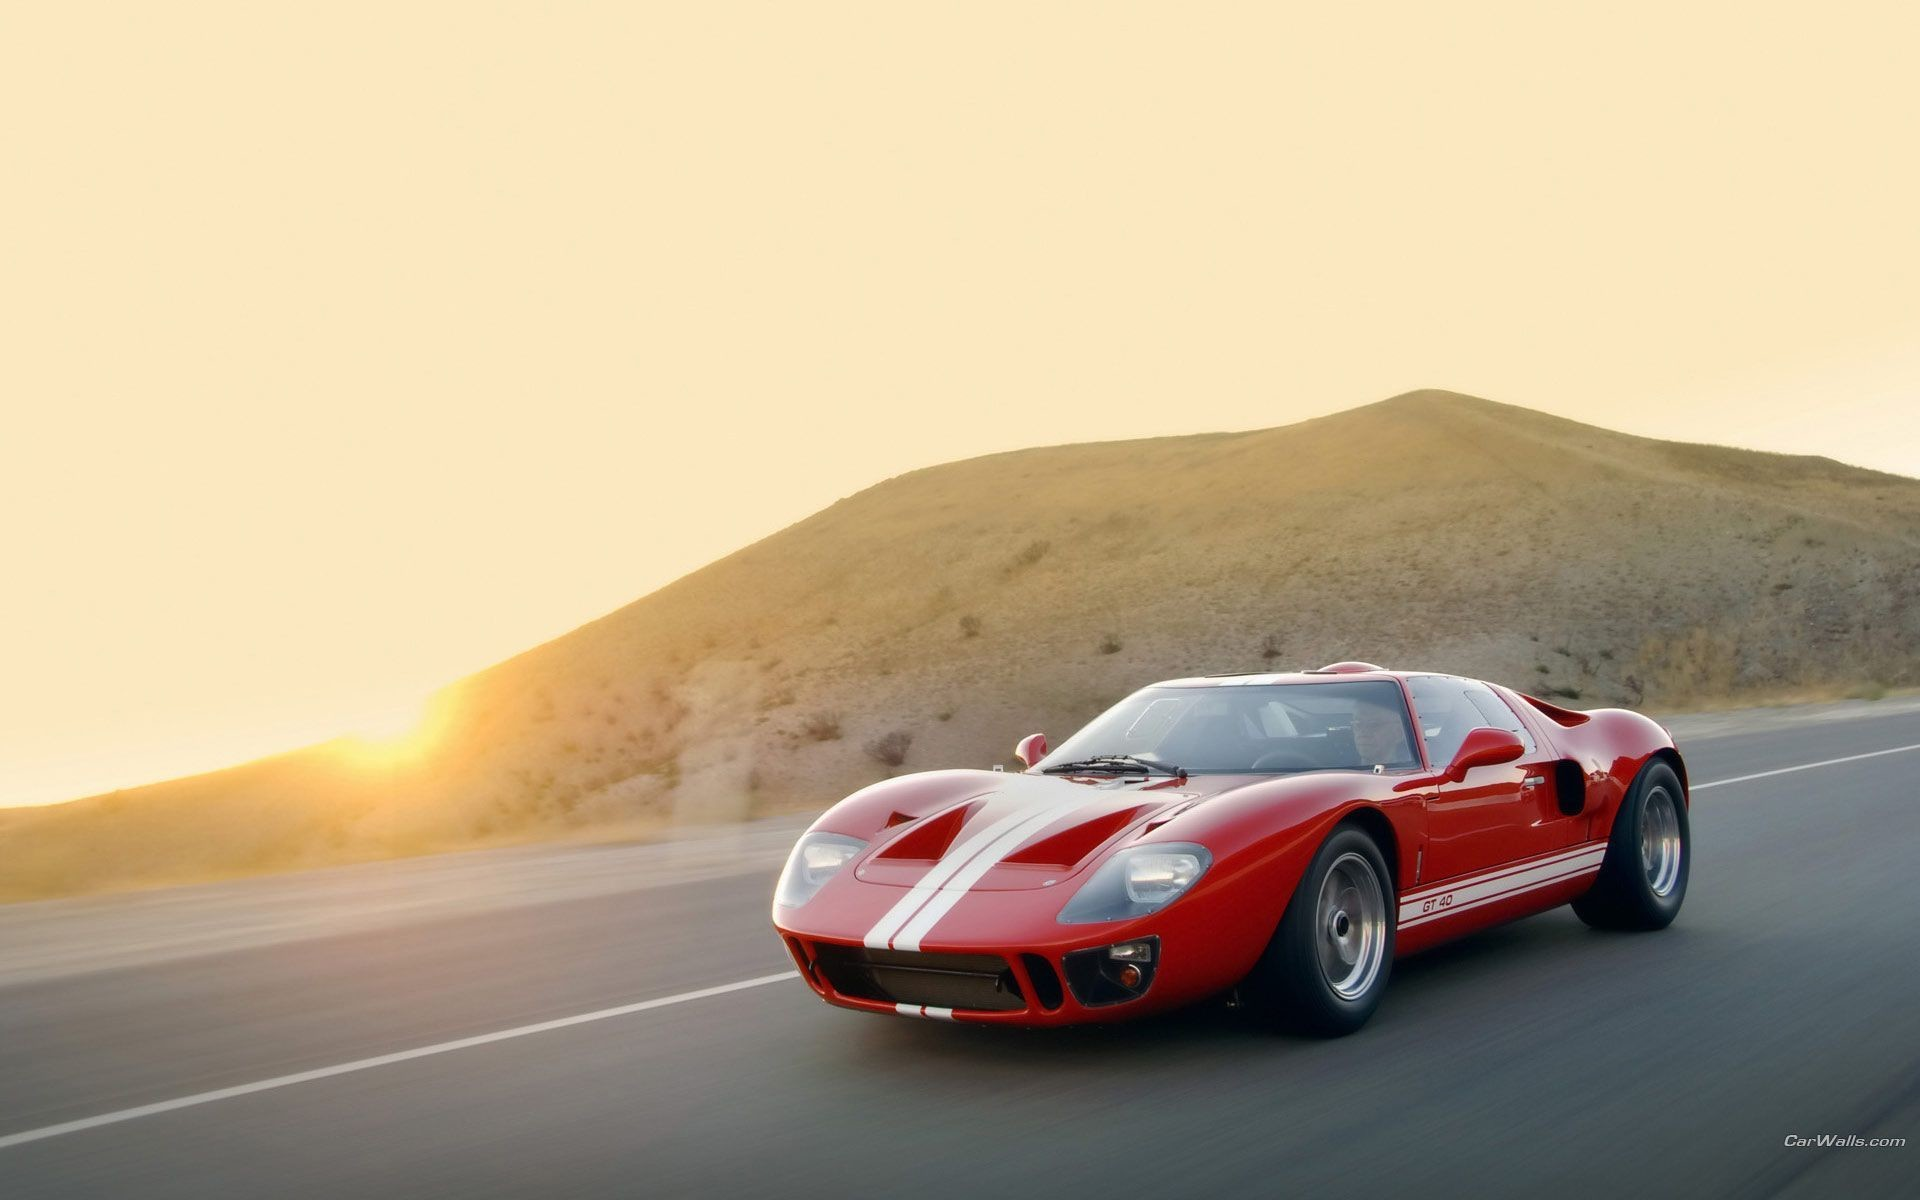 X Ford Gt Hd Wallpapers In Cars Imagesci Com